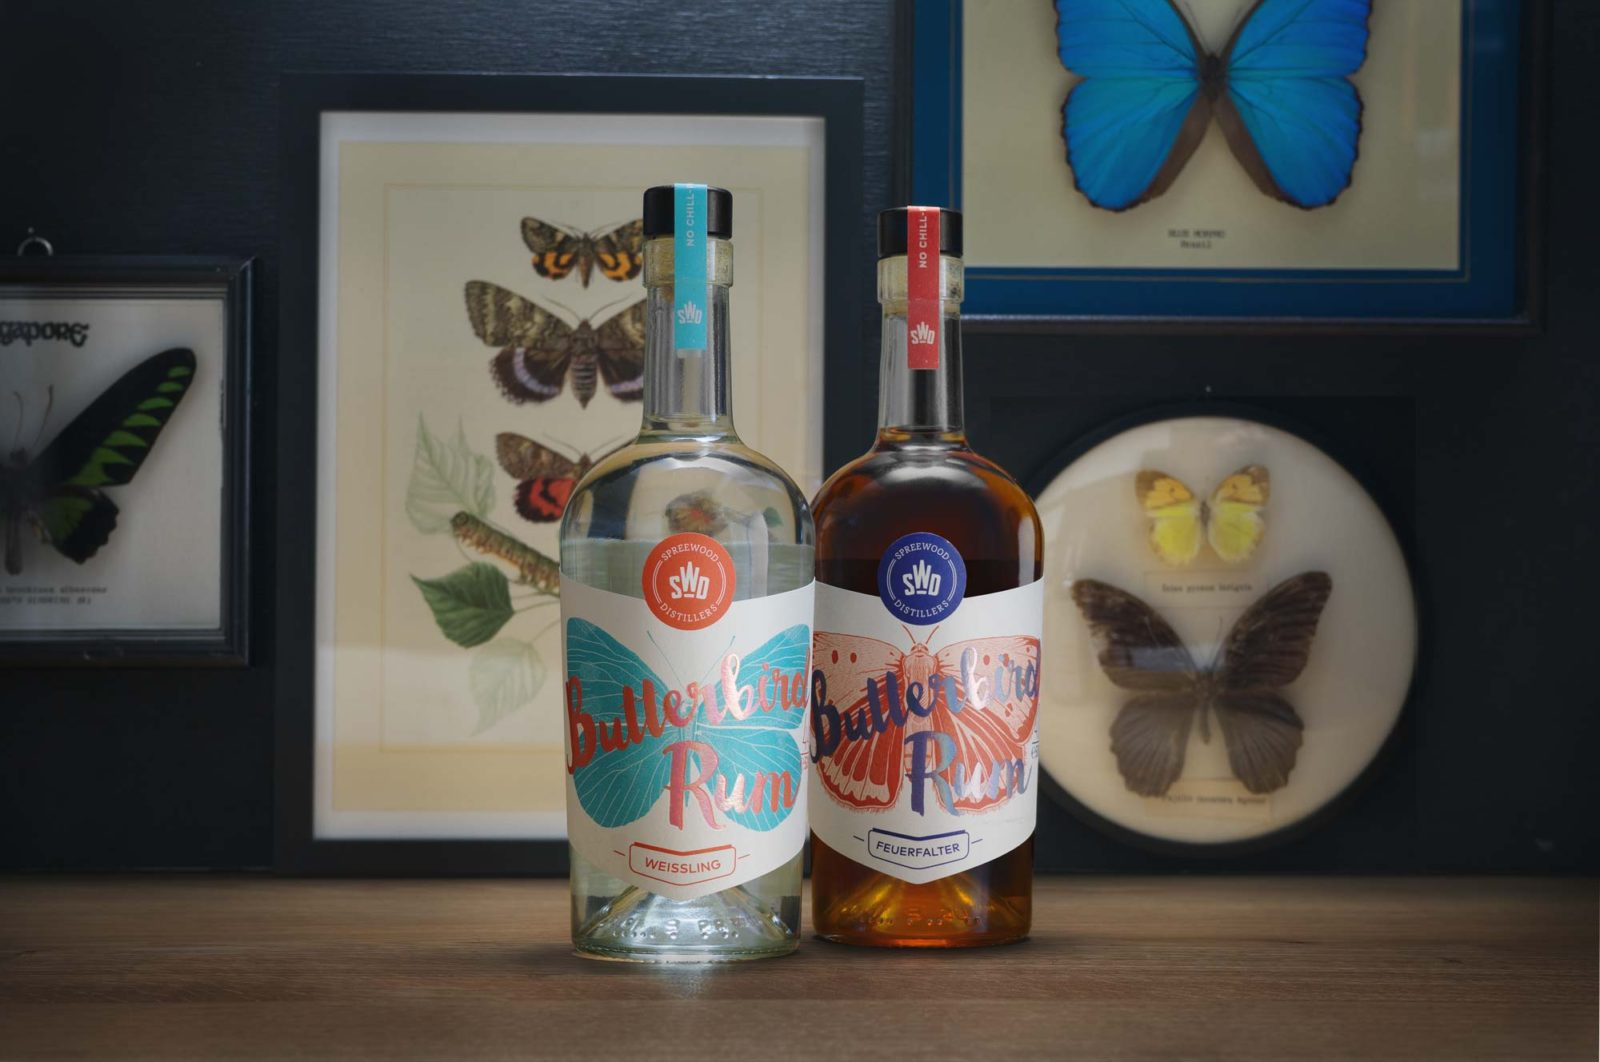 Editienne Grafikdesign - Kommunikationsdesign Berlin- Packaging Design- Spreewood Distillers- Butterbird Rum 12